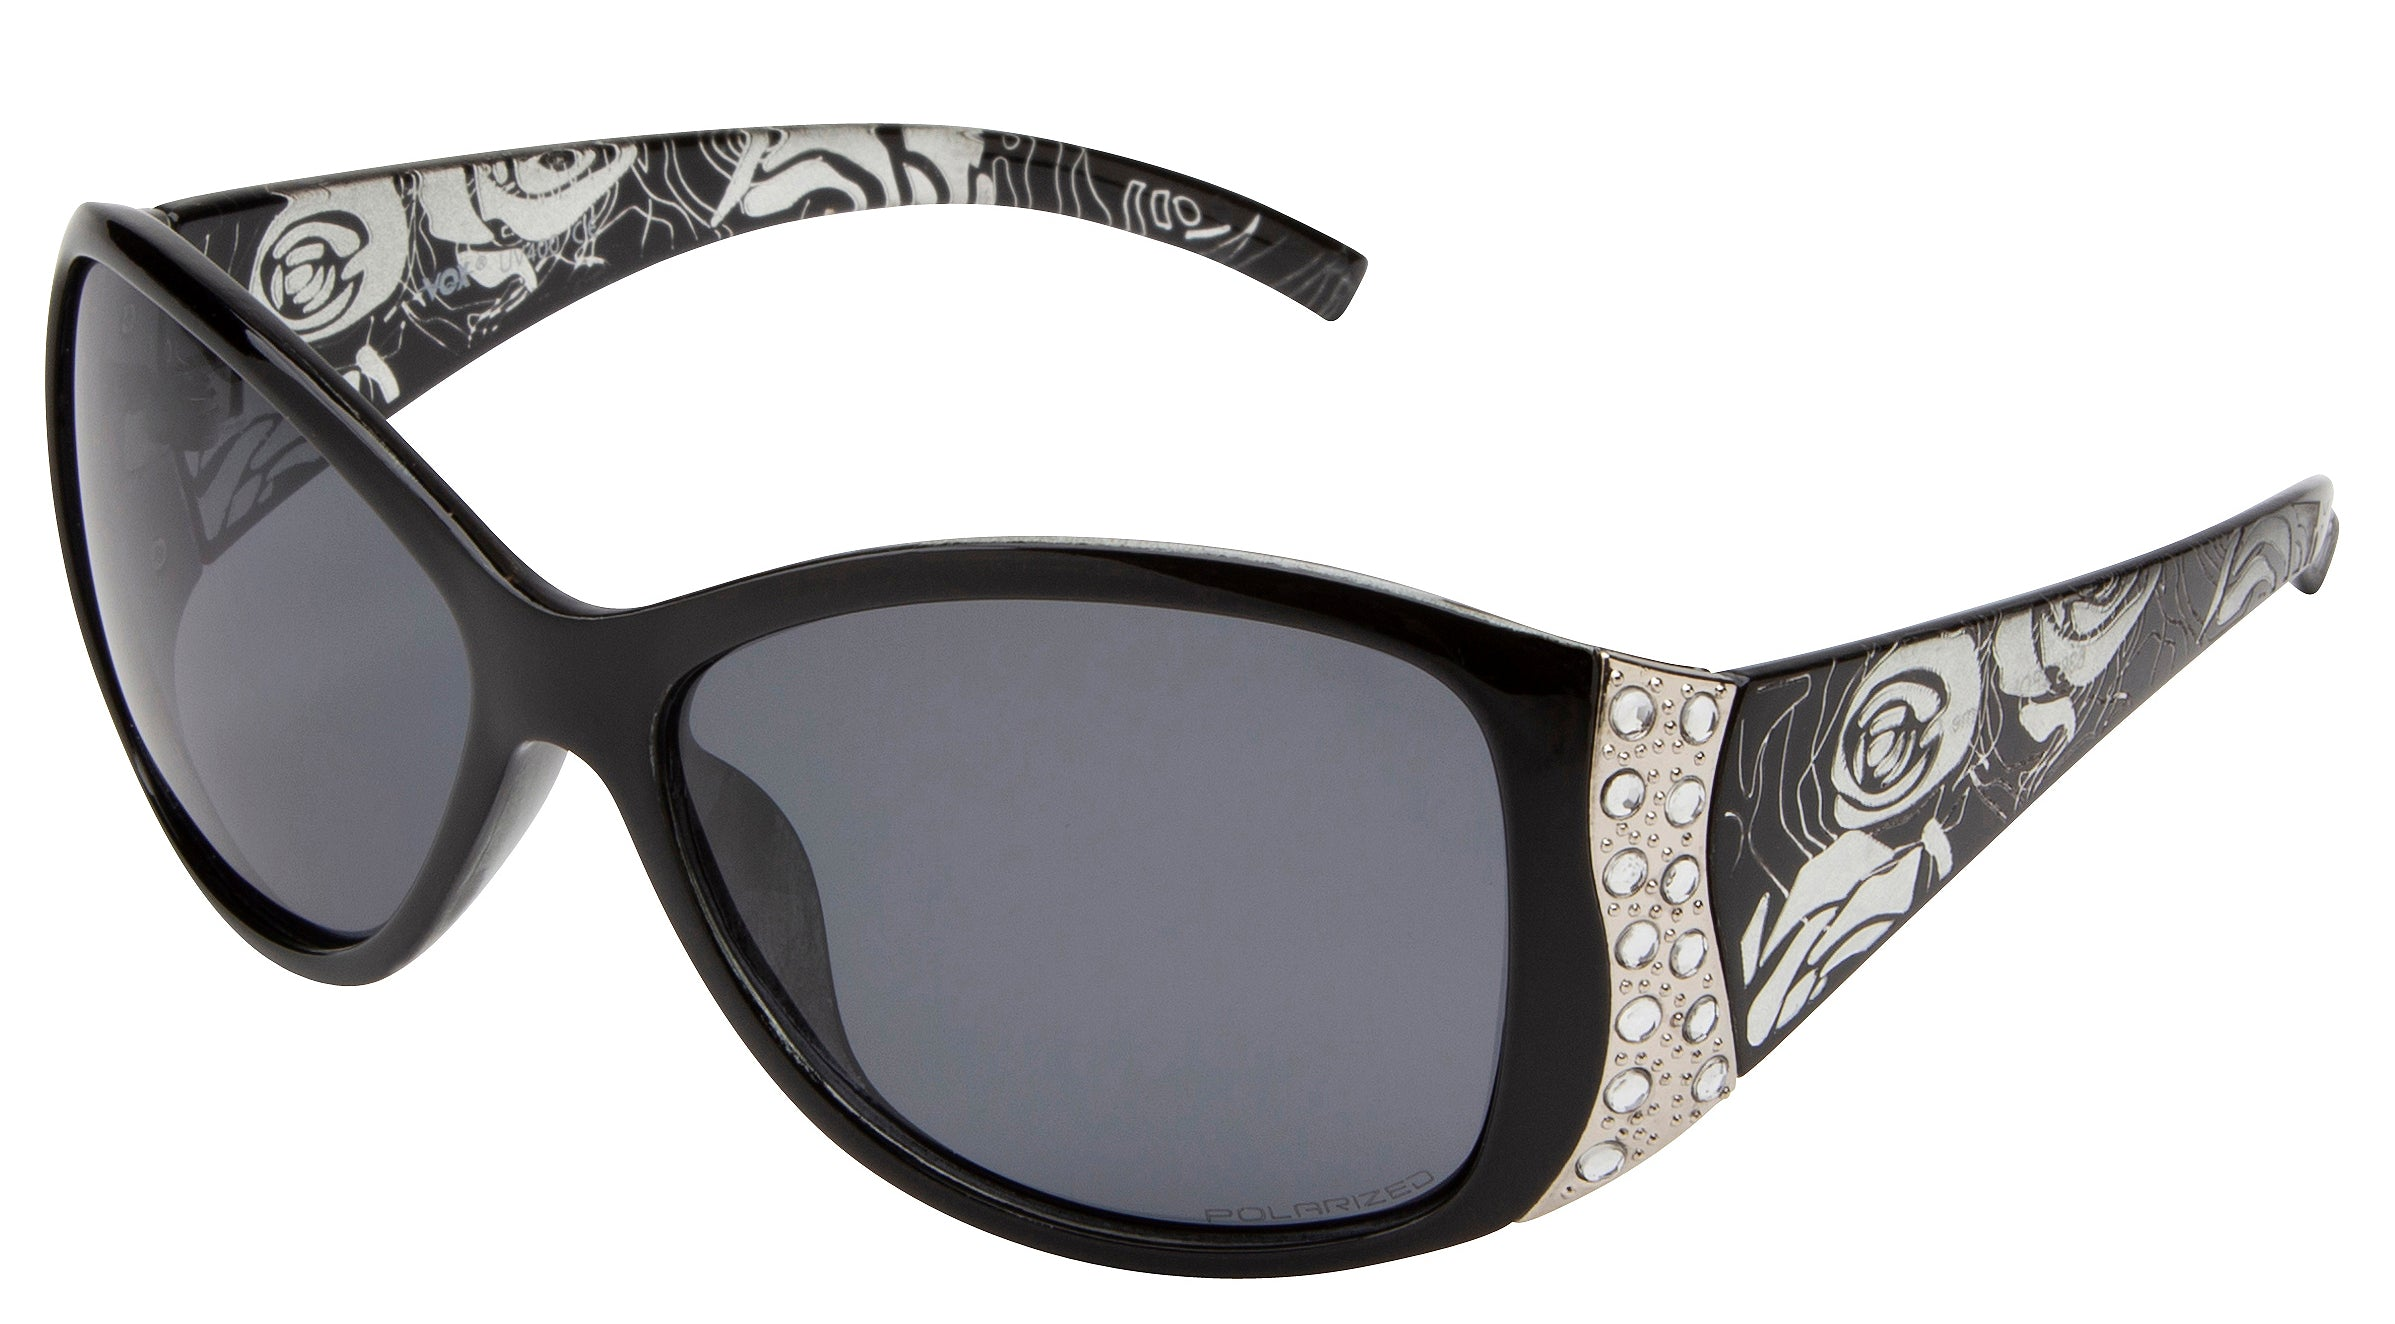 63035POL - Vox Women's Polarized PC Fashion Sunglasses w/ Rhinestones